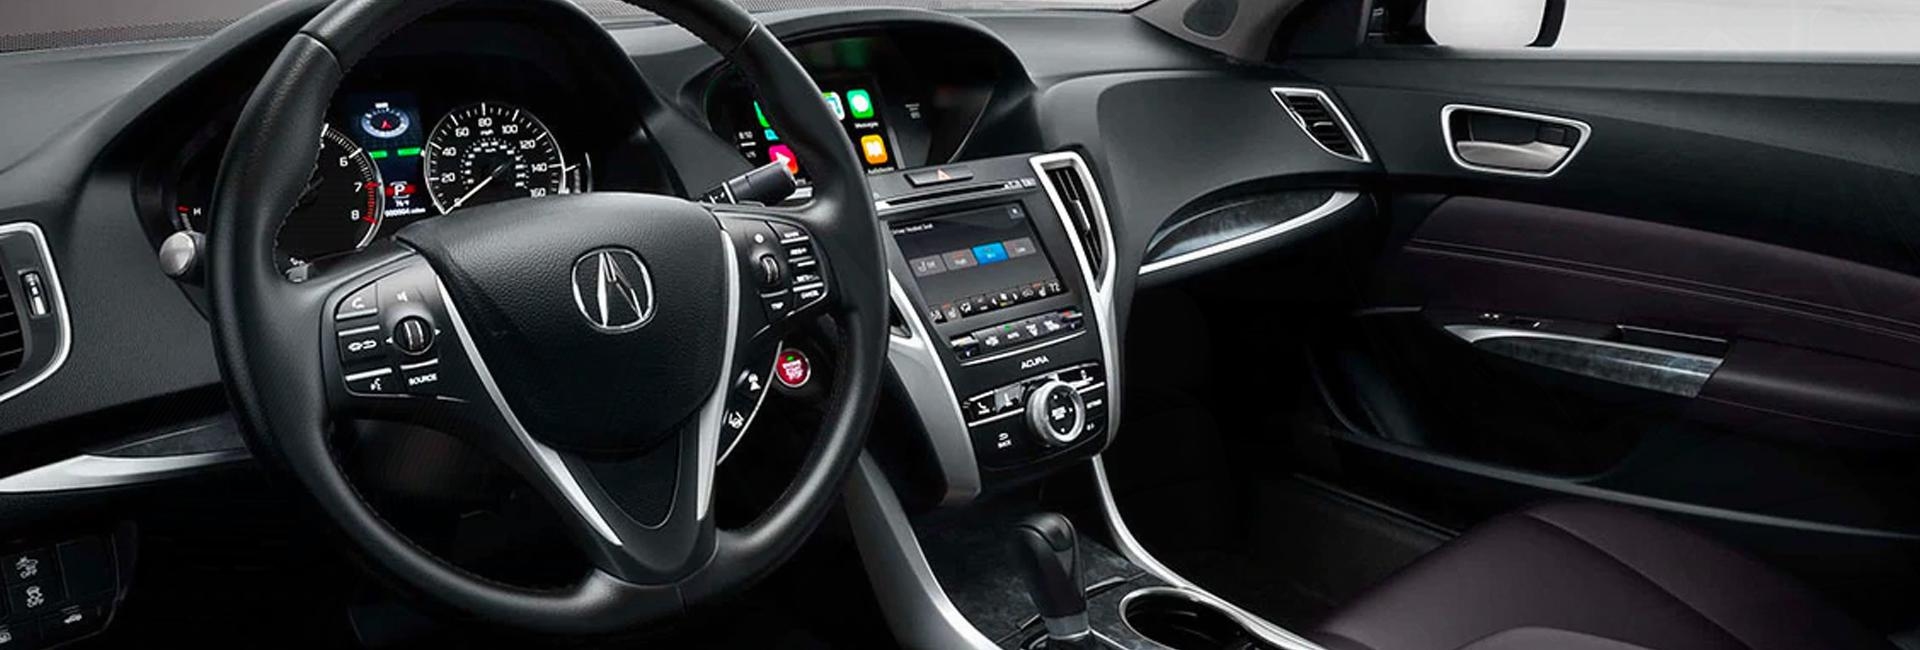 Picture of the interior of the 2020 Acura TLX for sale at Spitzer Acura in McMurray PA.